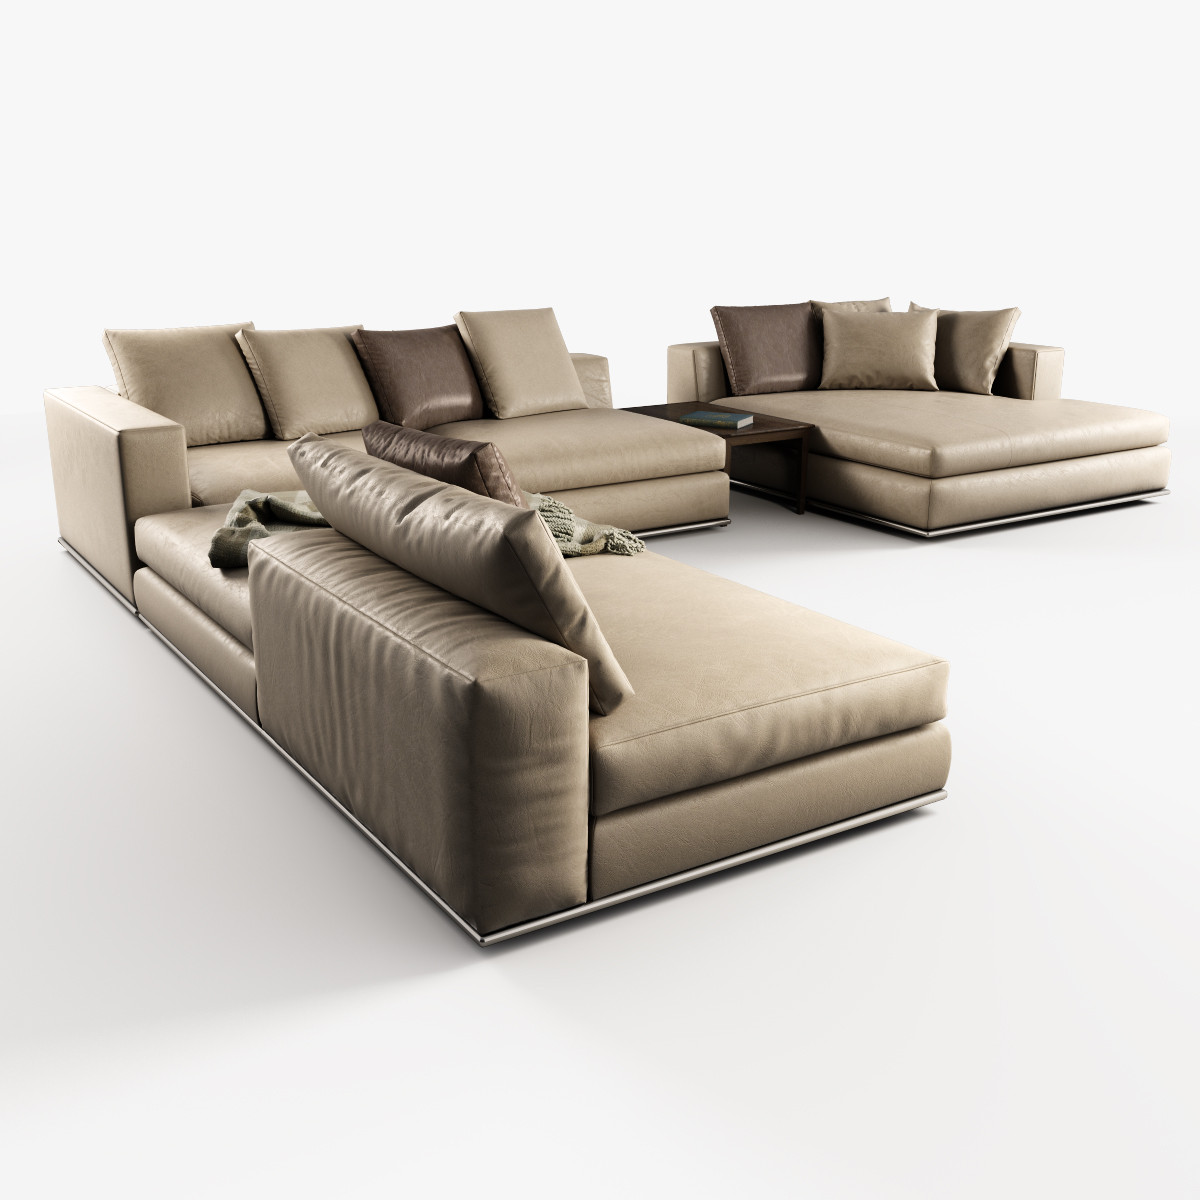 modular sofas hamilton minotti 3d model. Black Bedroom Furniture Sets. Home Design Ideas